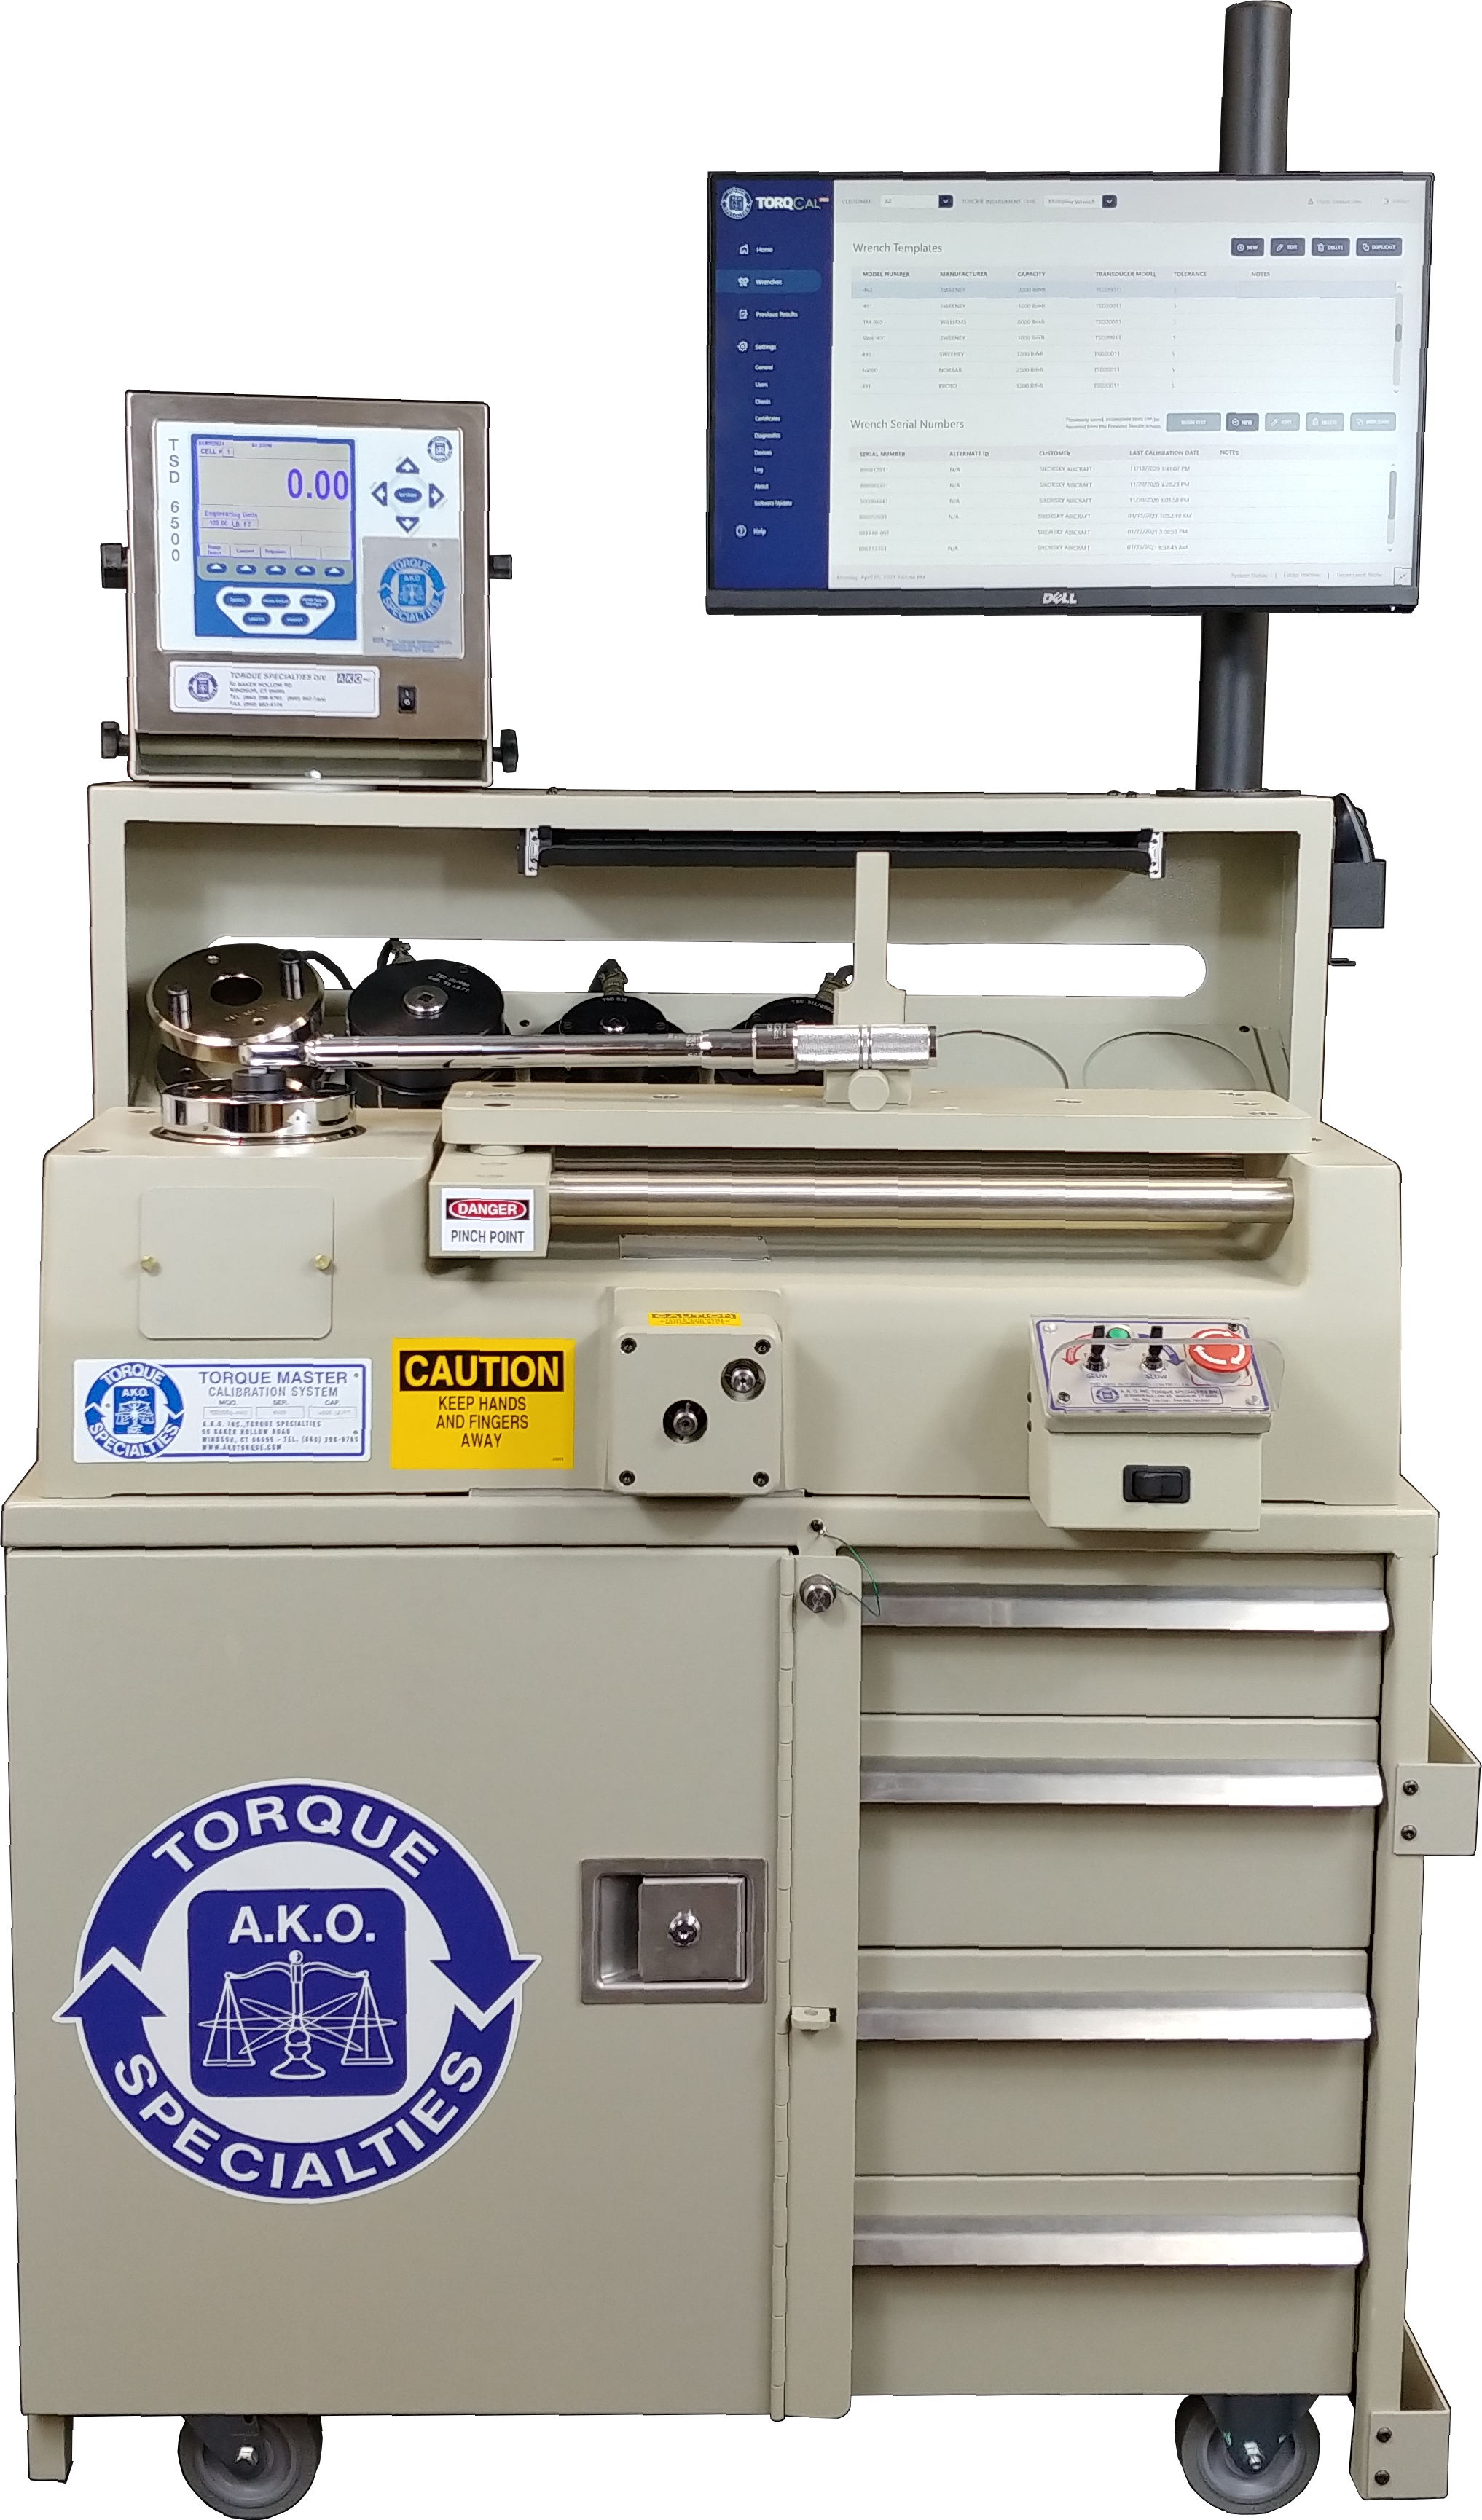 TSD2060 Pro automated system for click wrench calibration against transparent background